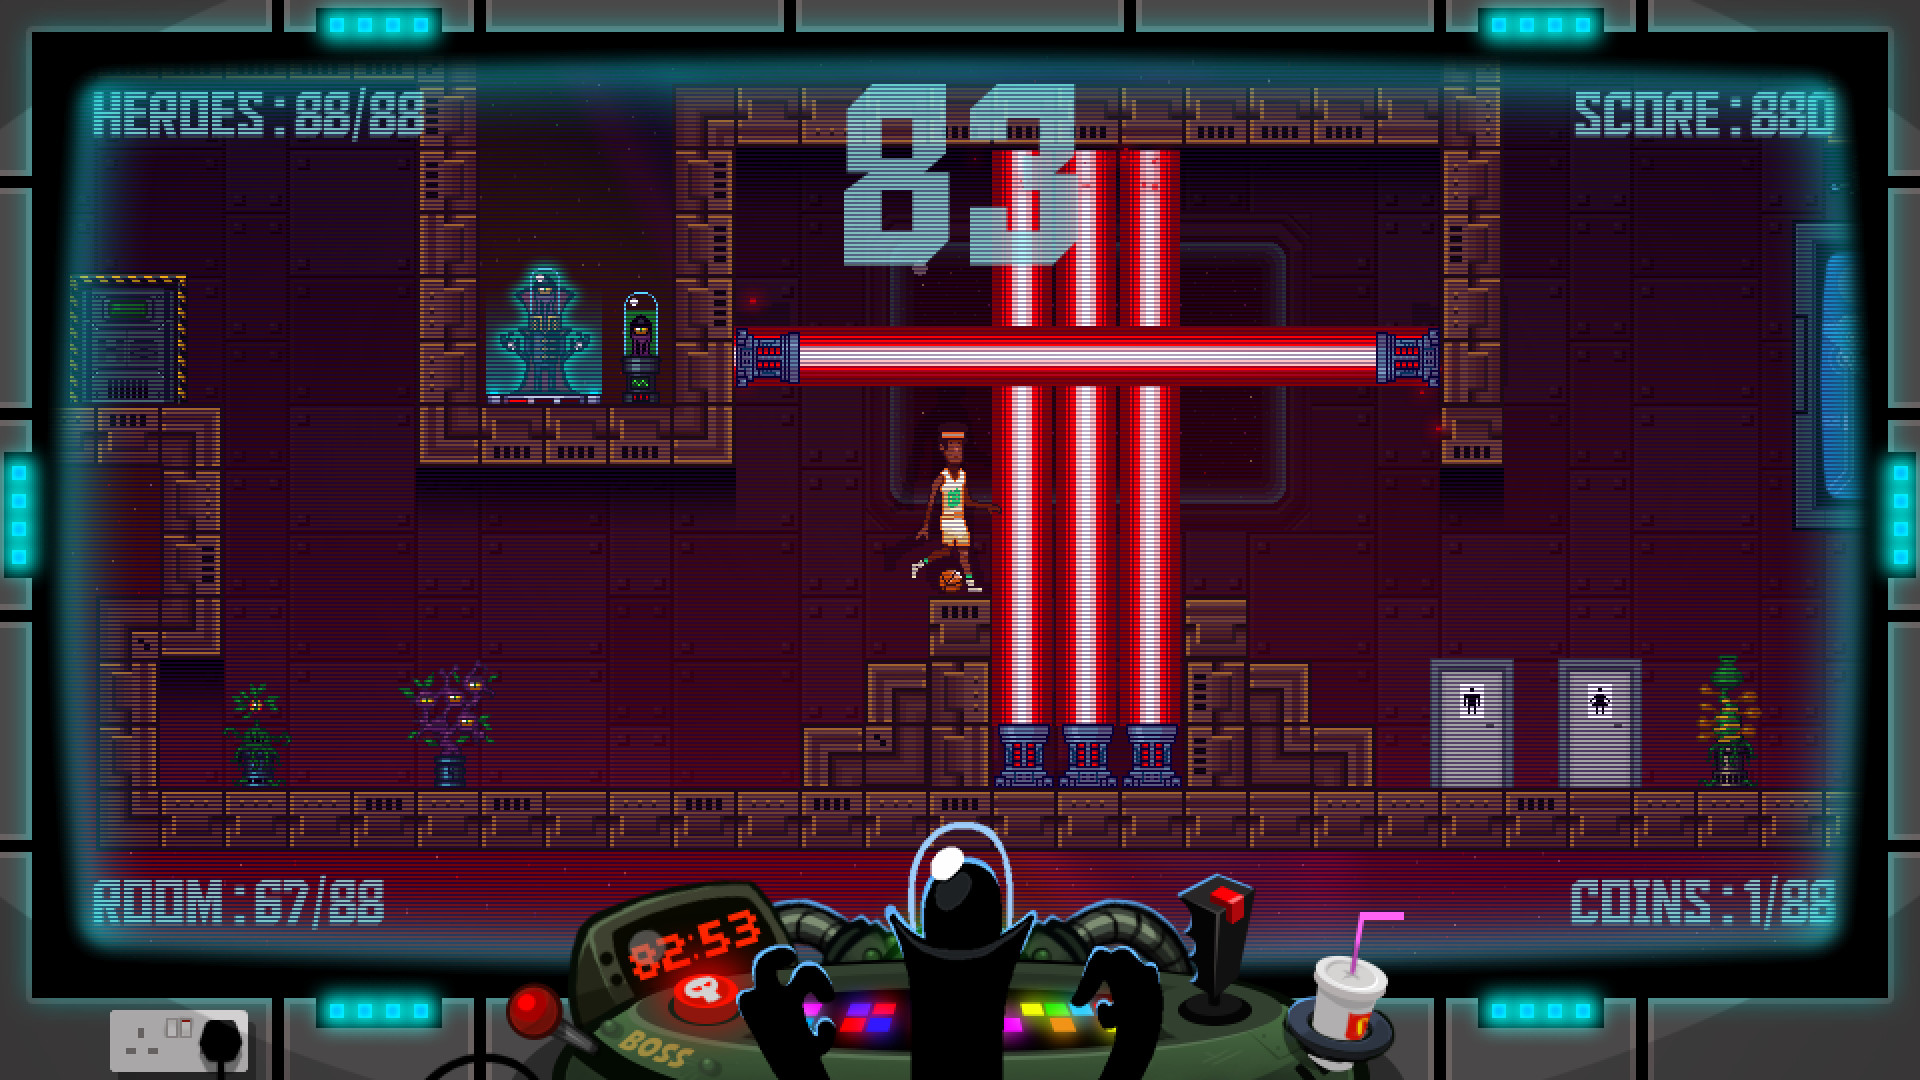 88 Heroes Screenshot 2